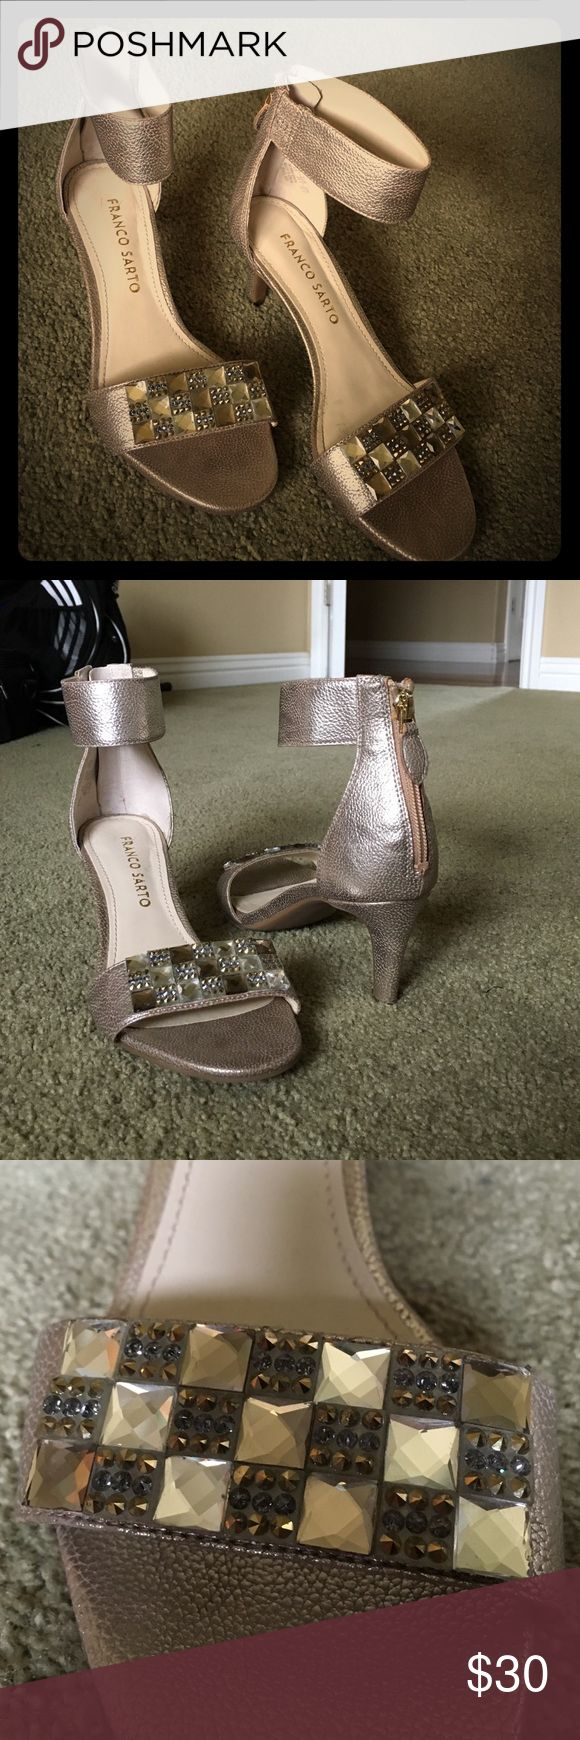 Champagne shimmering heels Champagne colored heels sigh embellished strap right before the toes. Very mature and gorgeous in pictures! Heel height: 2 inches Franco Sarto Shoes Heels